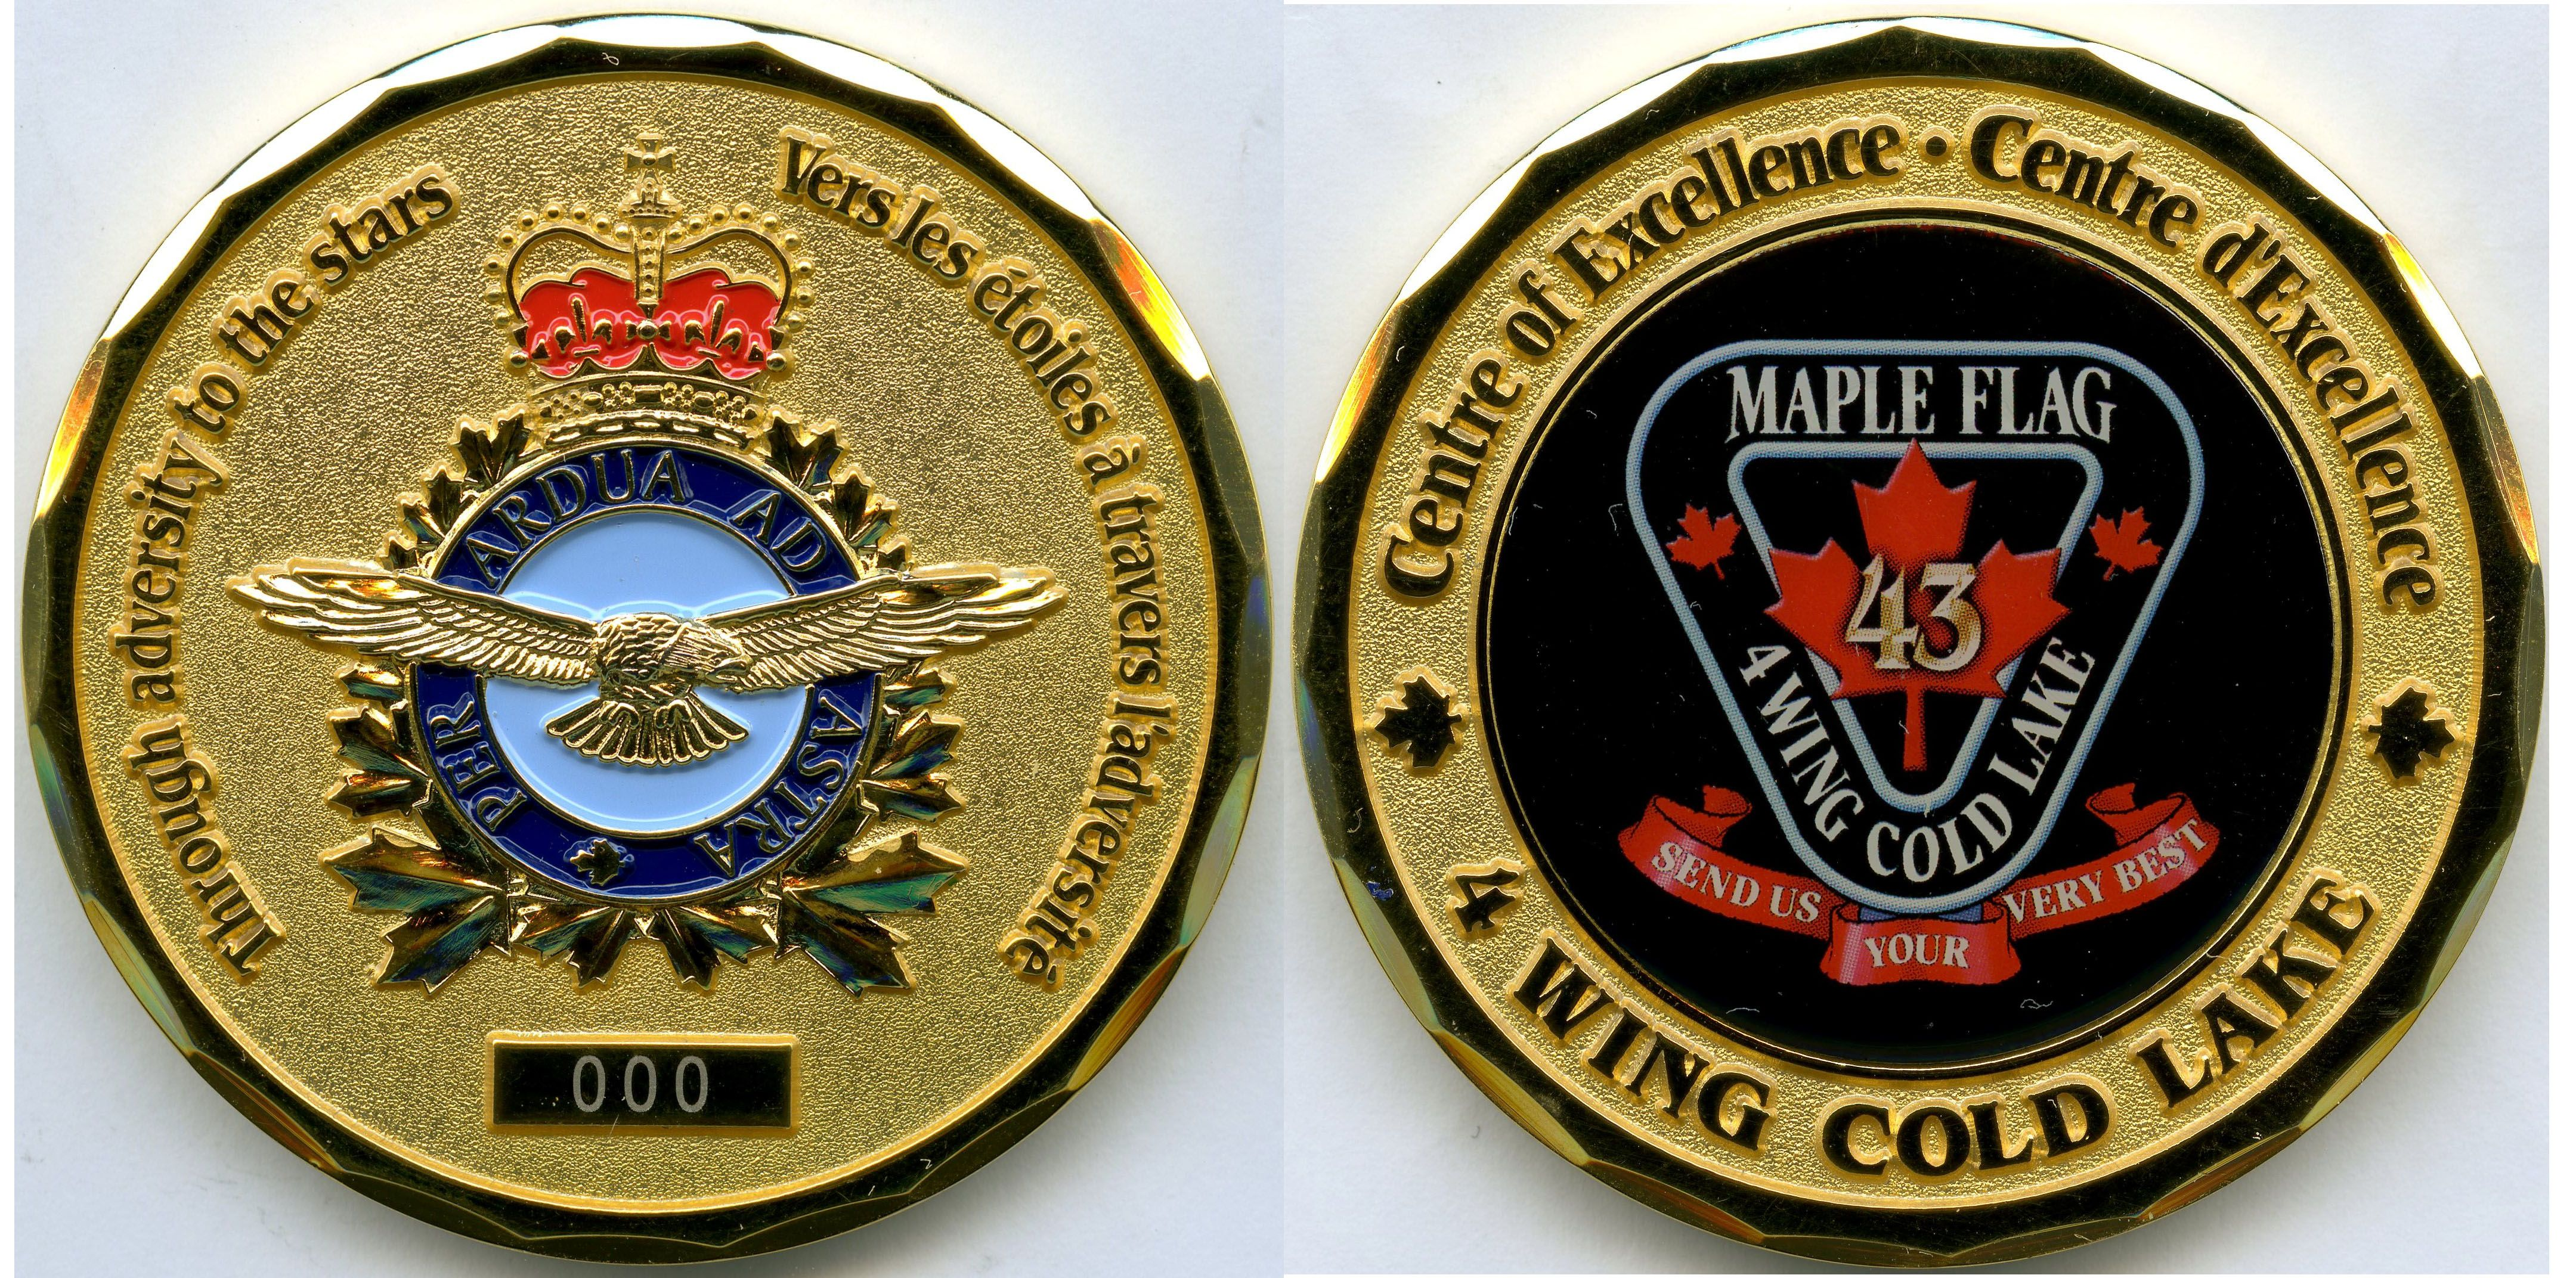 RCAF 4 Wing Cold Lake Maple Flag 43 Challenge Coin